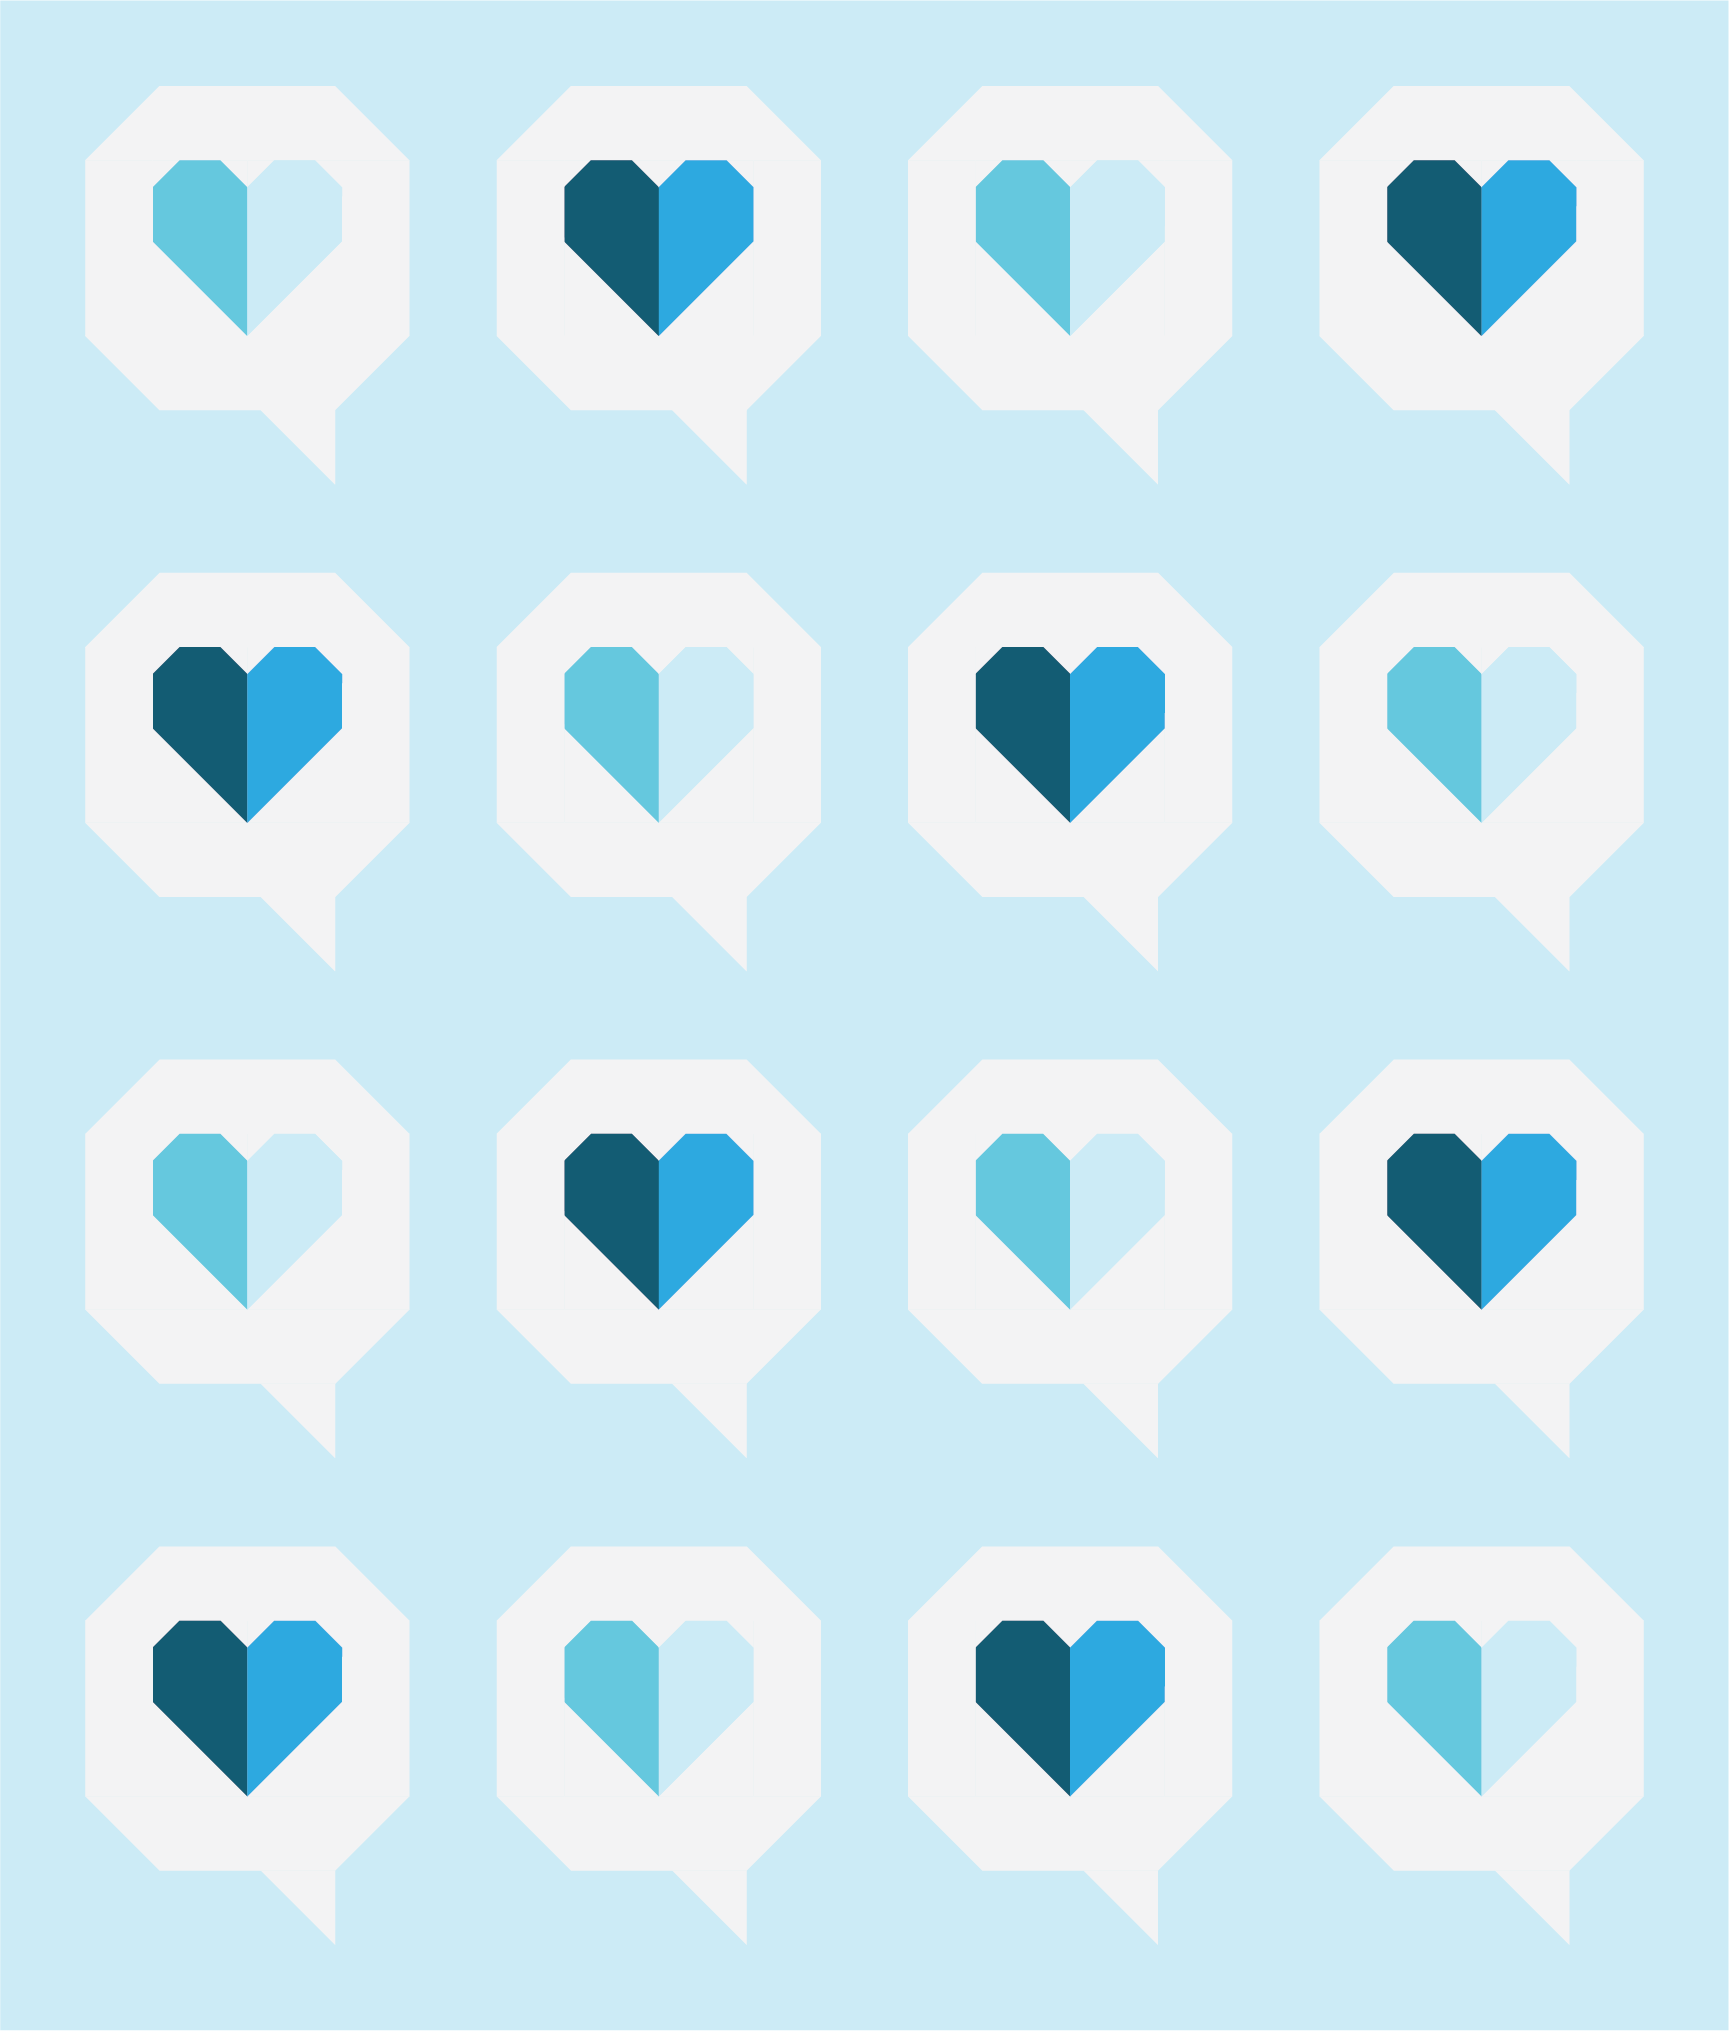 I Heart You Quilt by Then Came June: Cyan version by Sewfinity